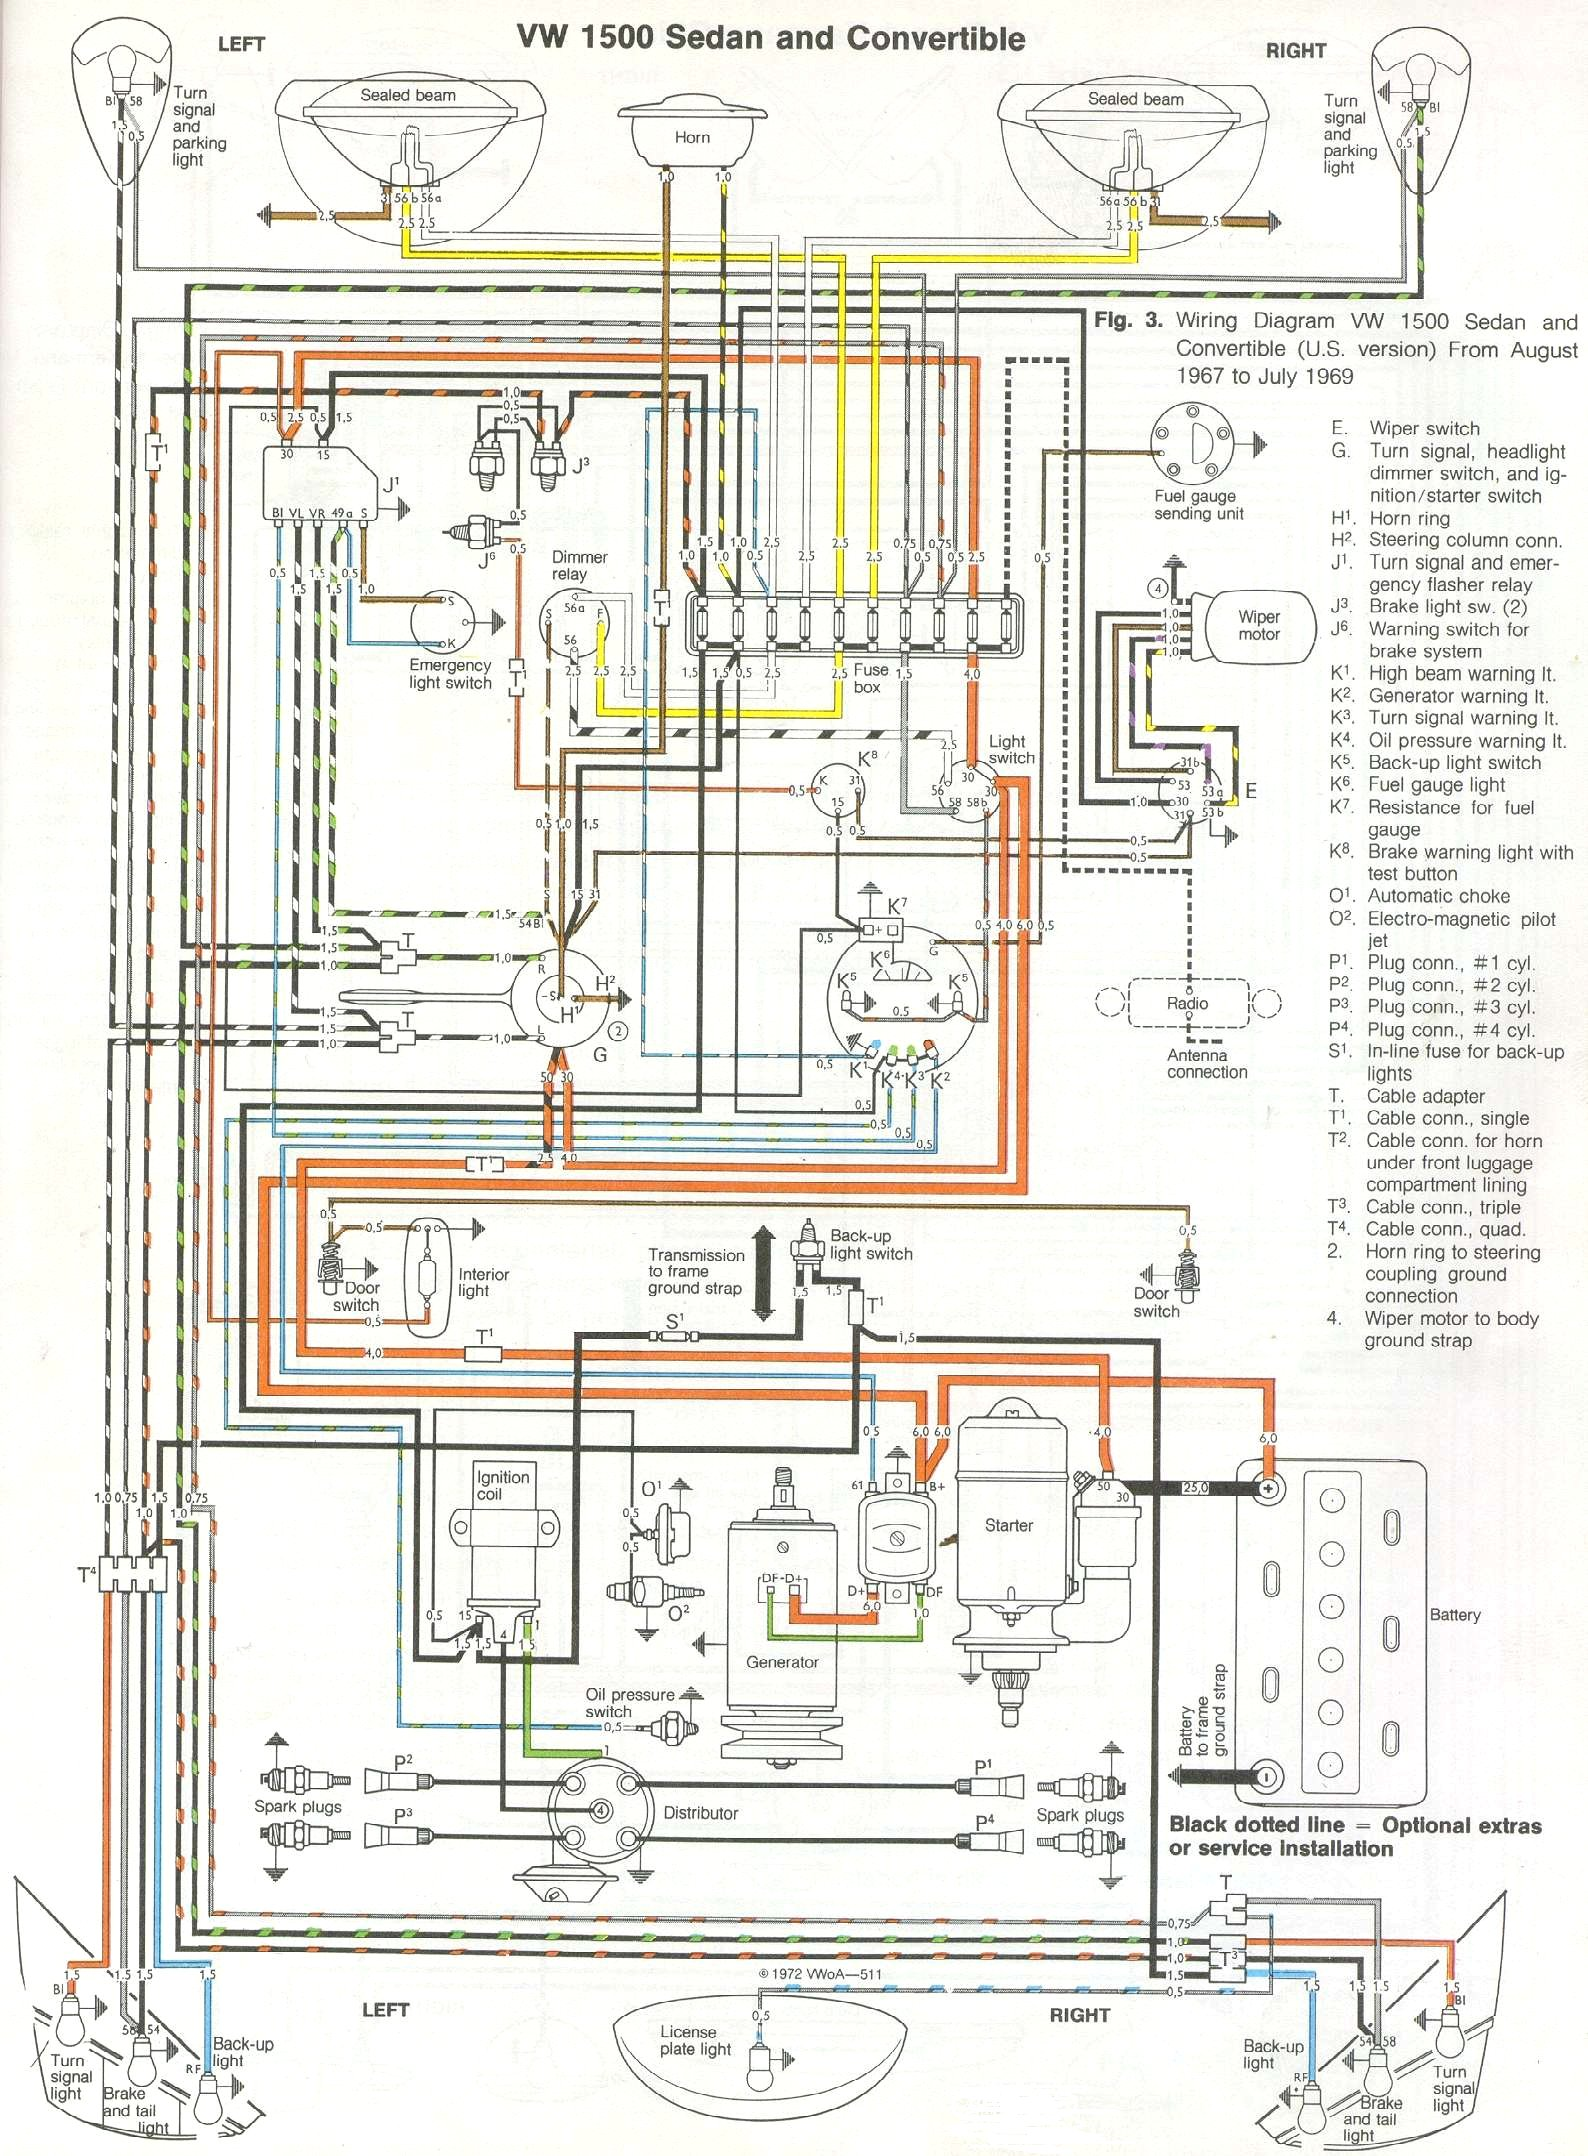 1968 Vw Fuse Diagram Schema Wiring Diagrams 07 Jetta Box 69 Beetle Usa Thegoldenbug Com Cabrio